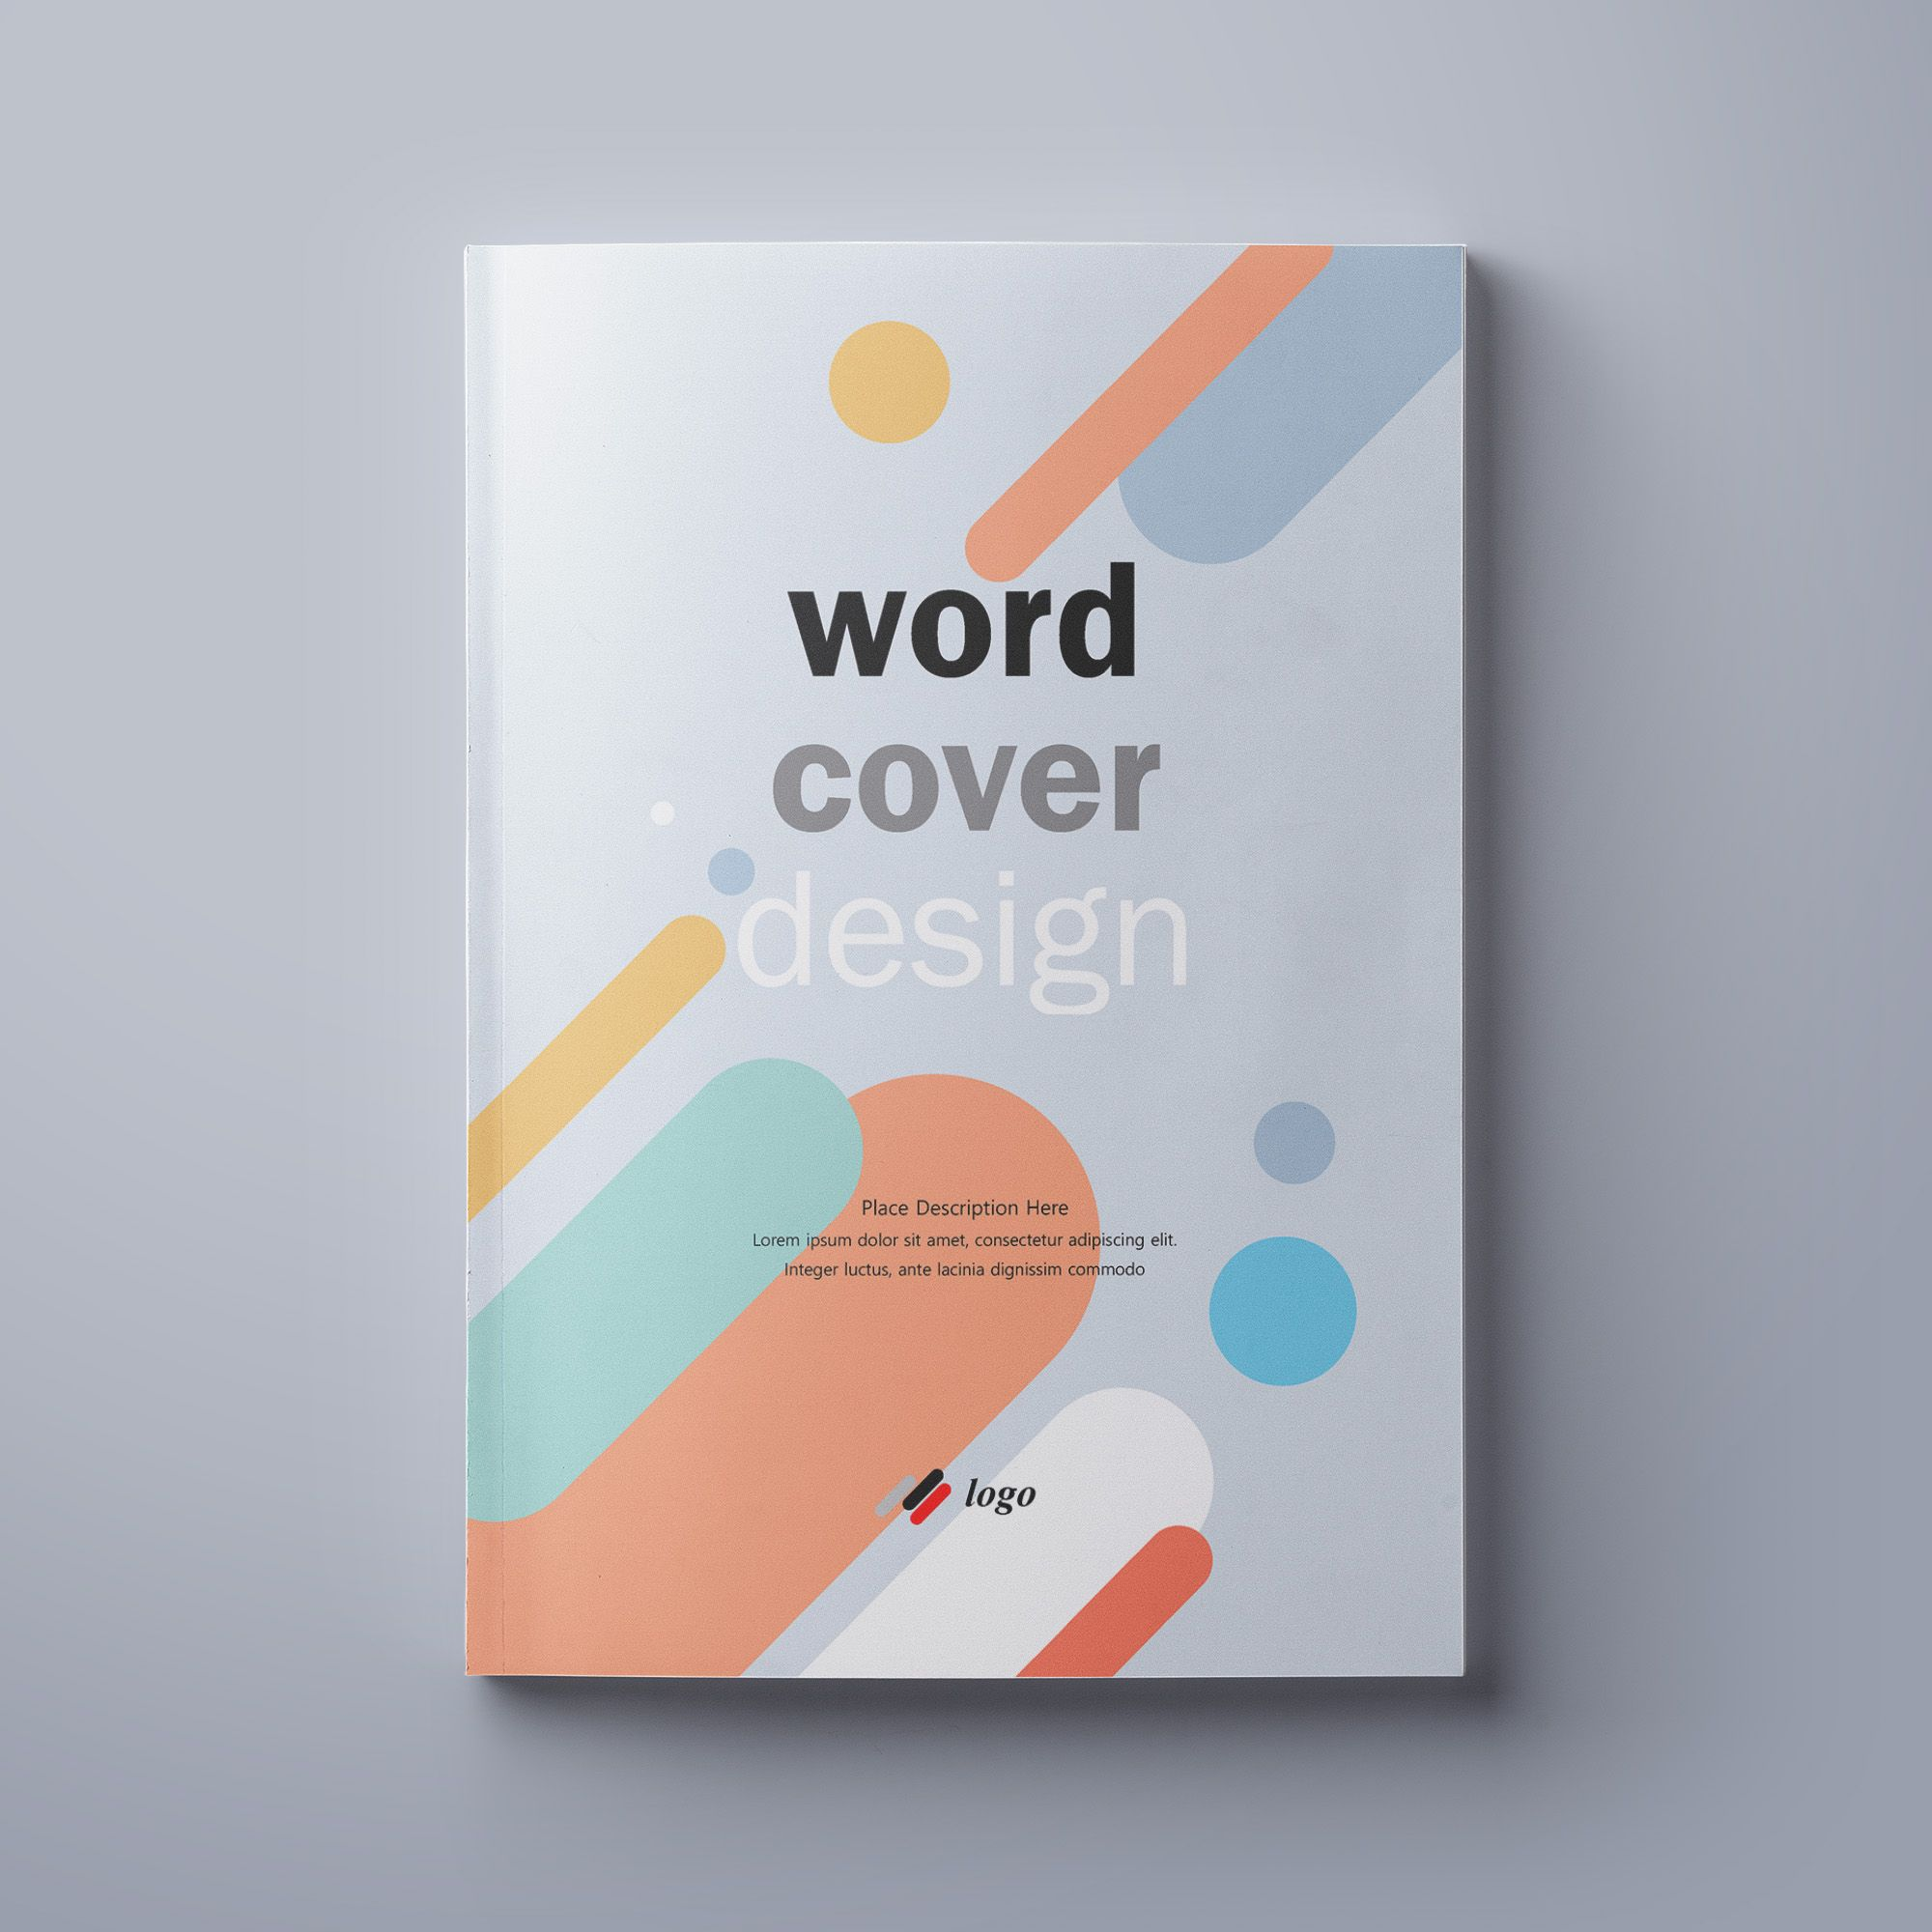 Microsoft Word Cover Templates 17 Free Download Word Template Design Cover Template Microsoft Word Free Free download templates for word